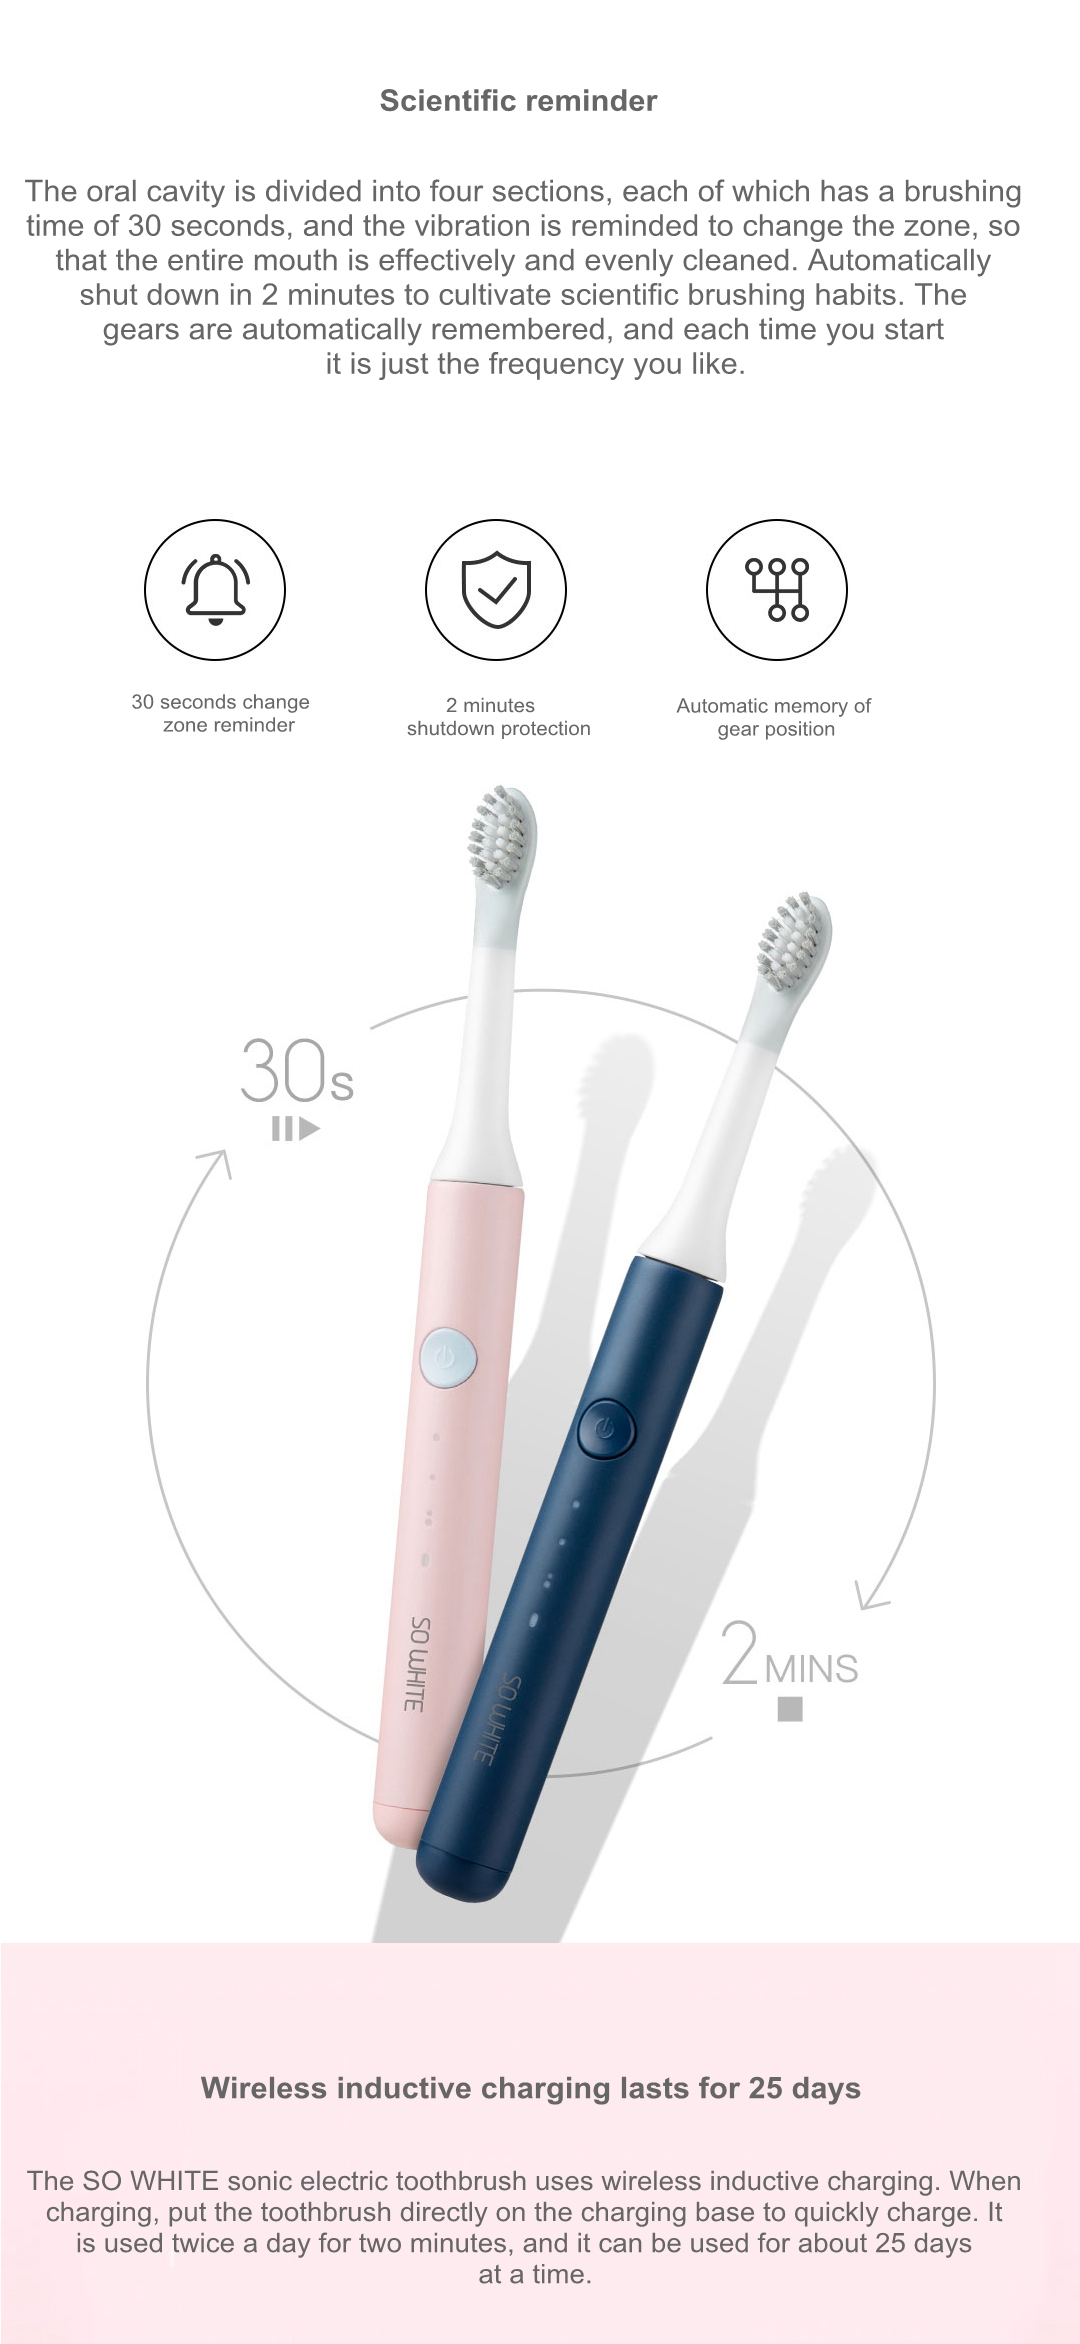 SO WHITE Wireless Sonic Electric Toothbrush 9